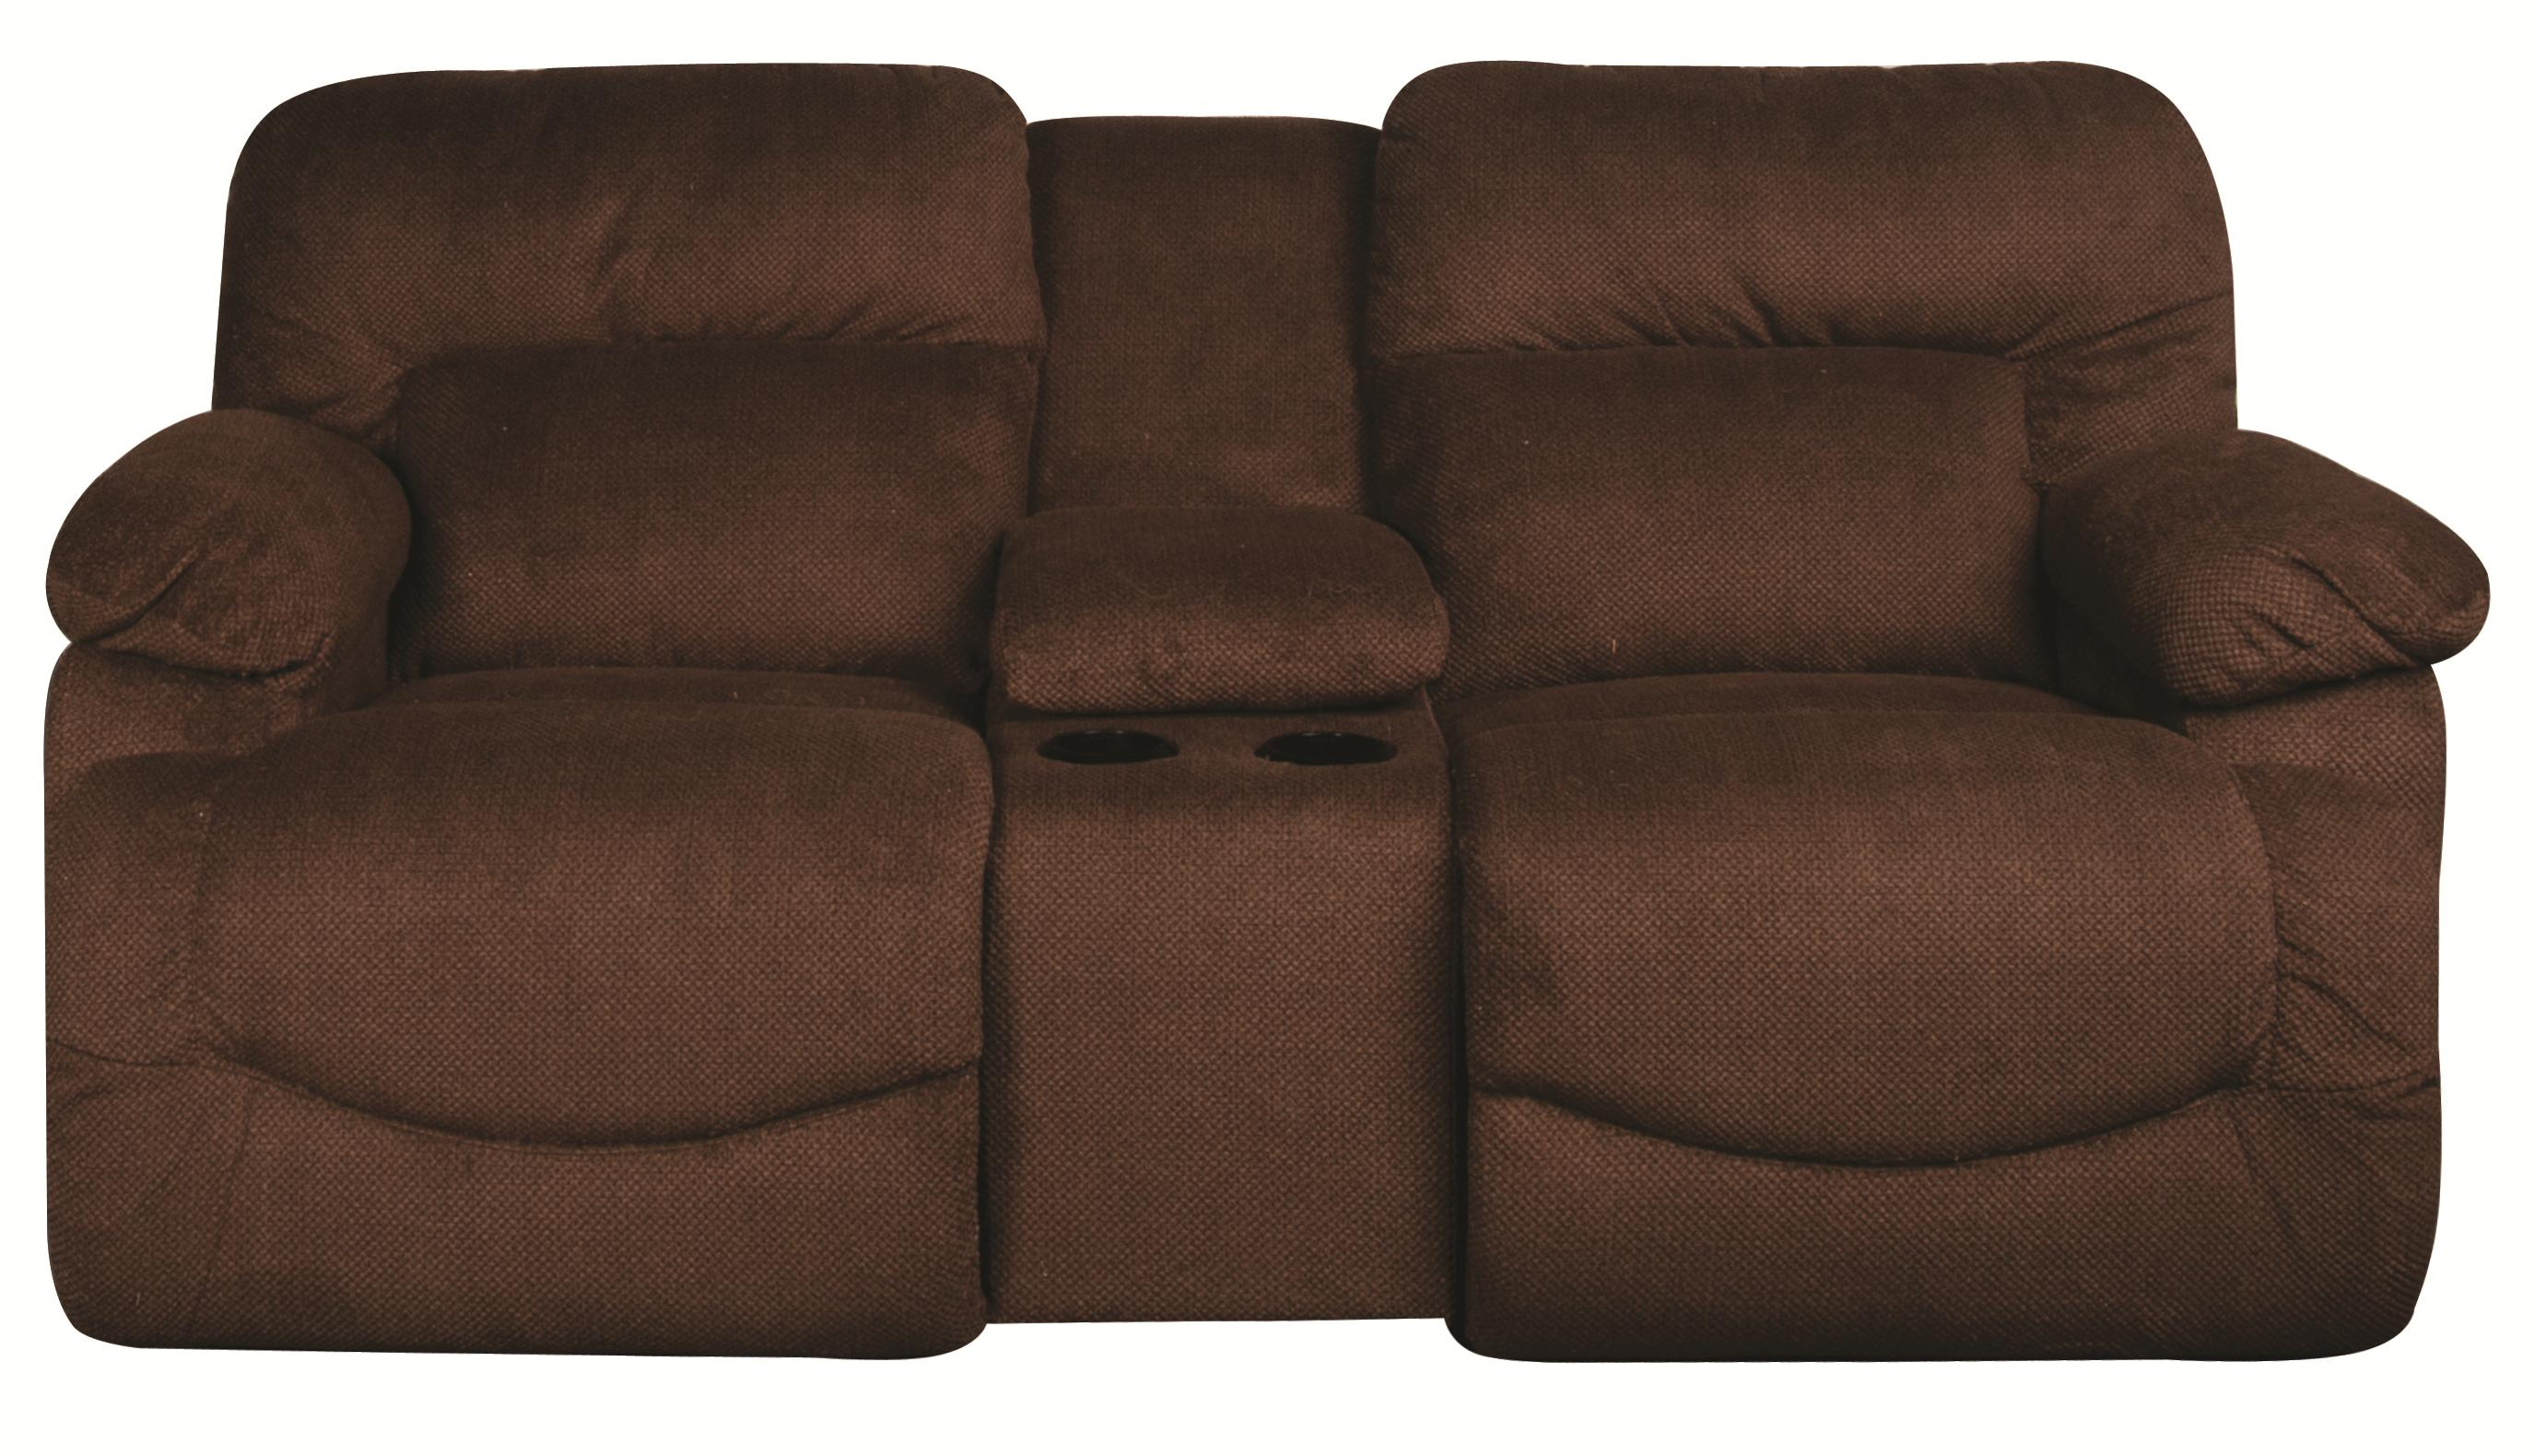 La-Z-Boy Asher Asher Reclining Loveseat with Console - Item Number: 105854207